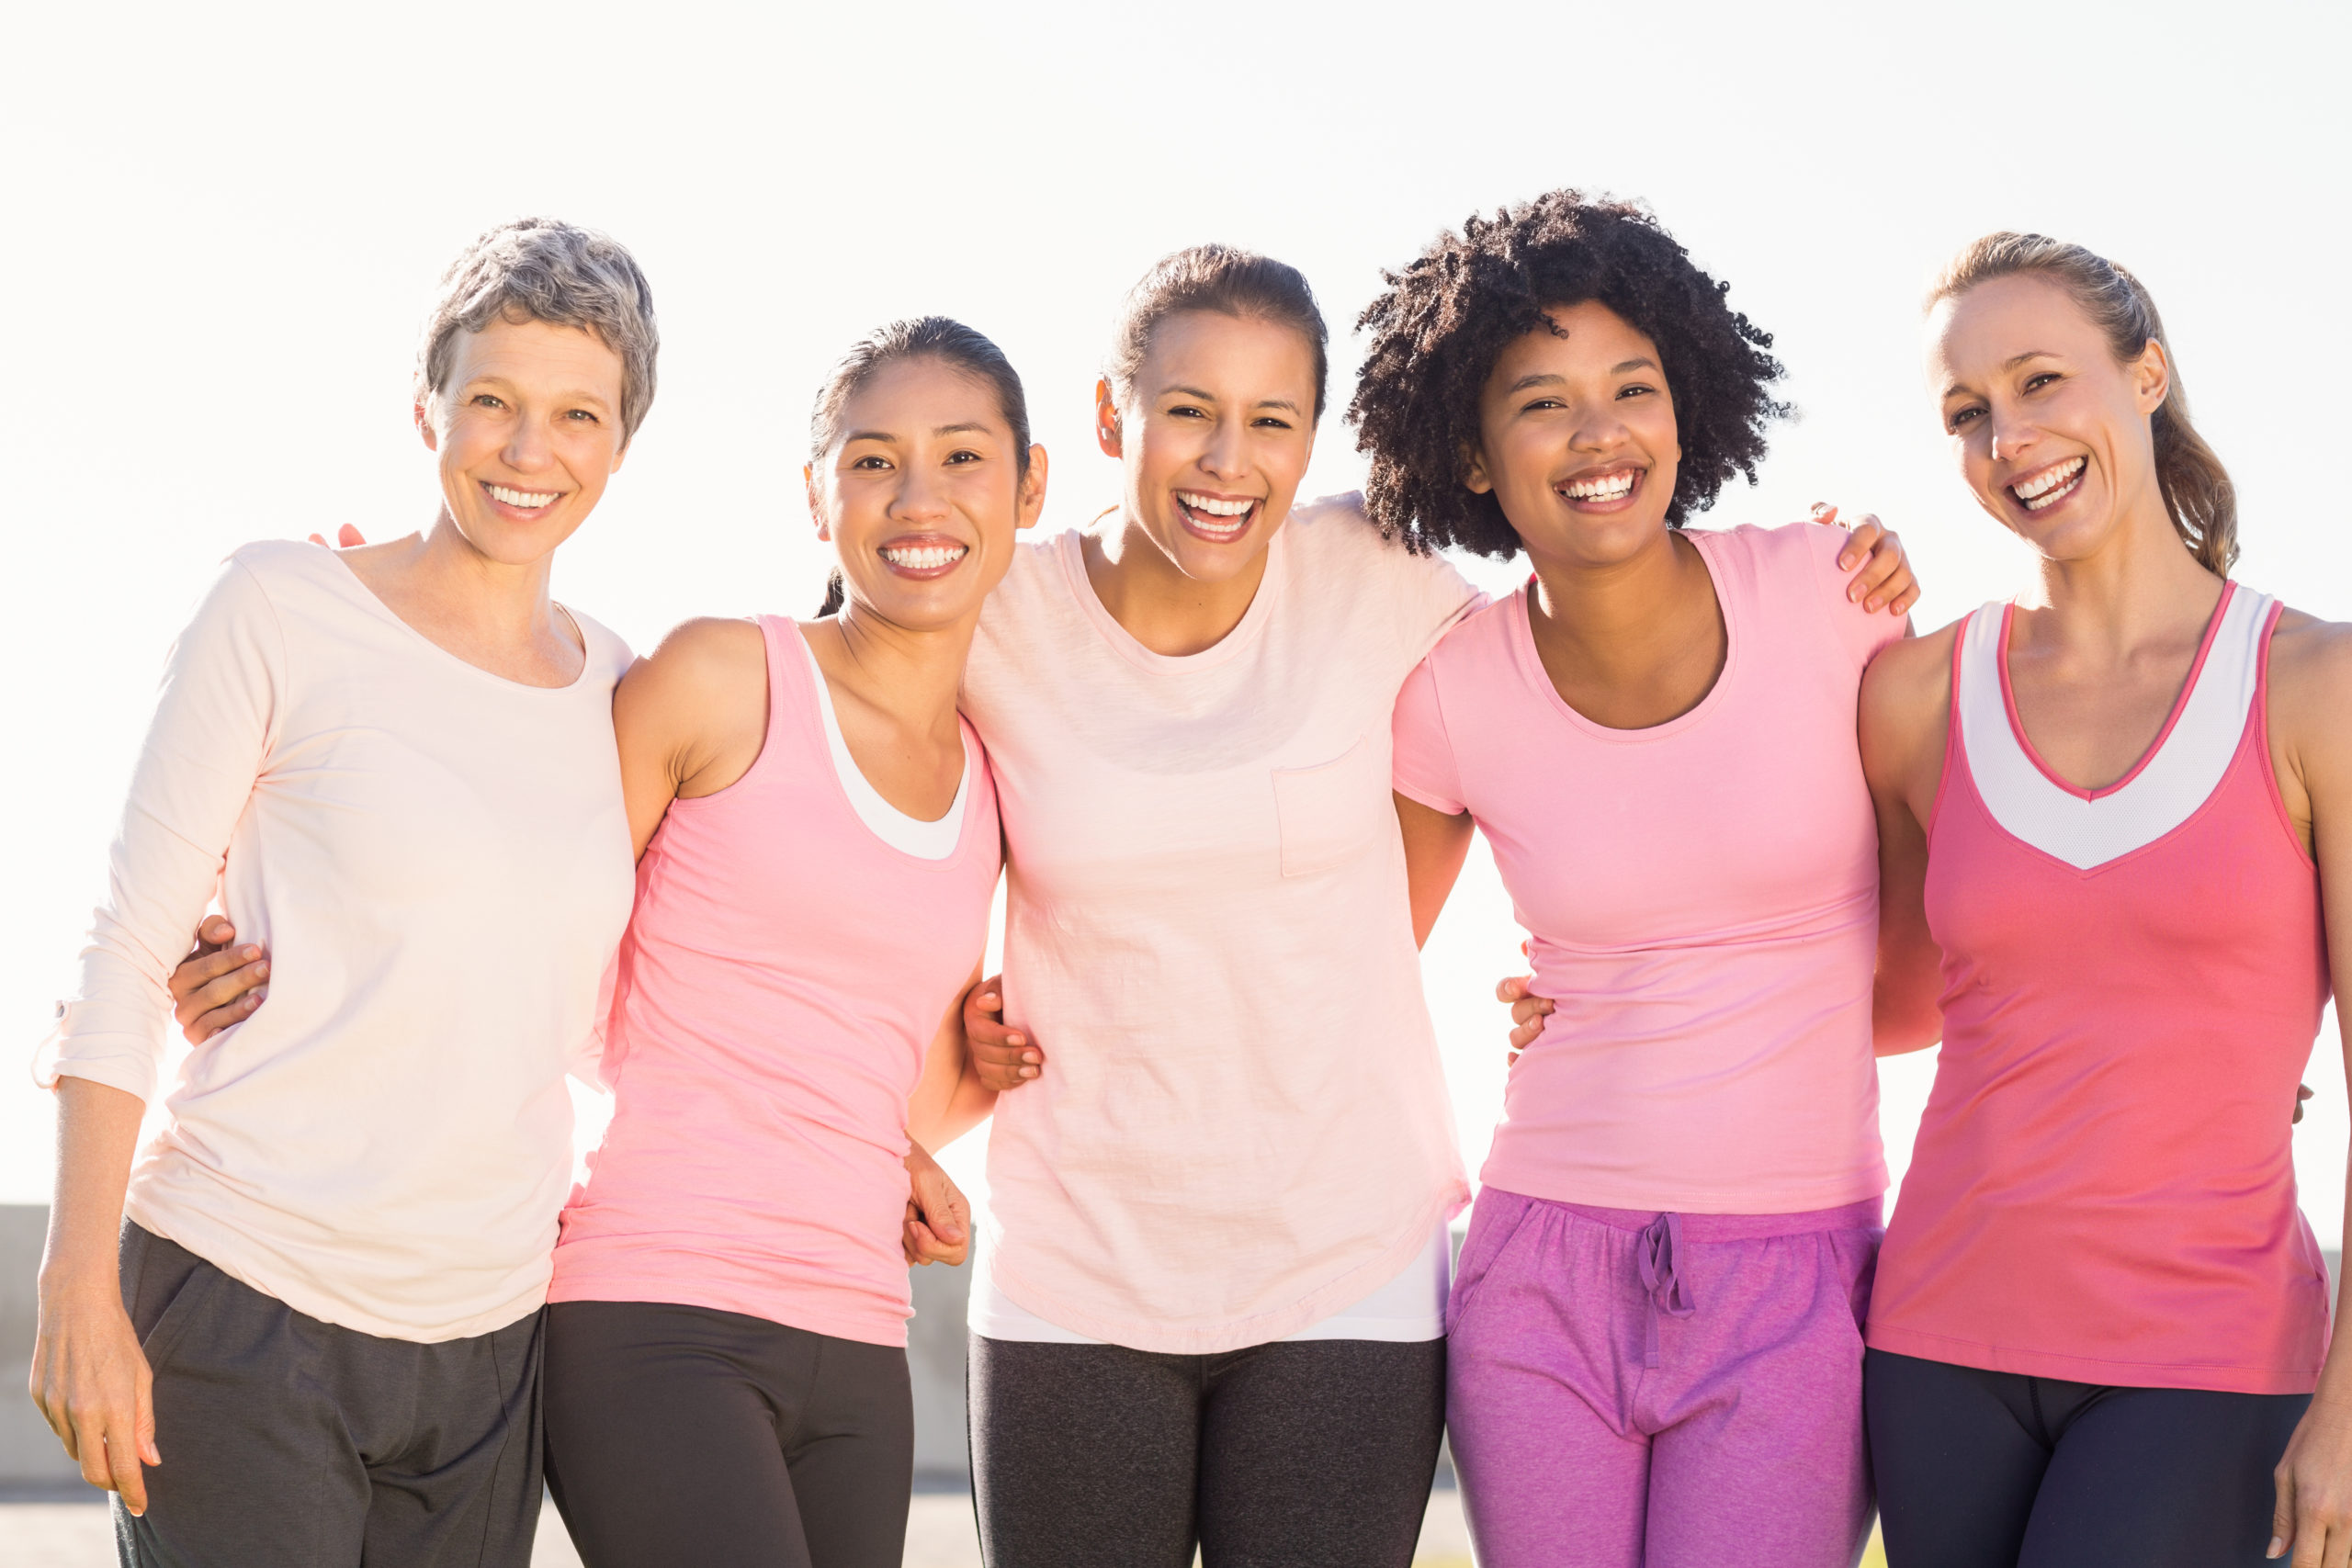 Five women wearing pink athletic wear clothes and all are smiling